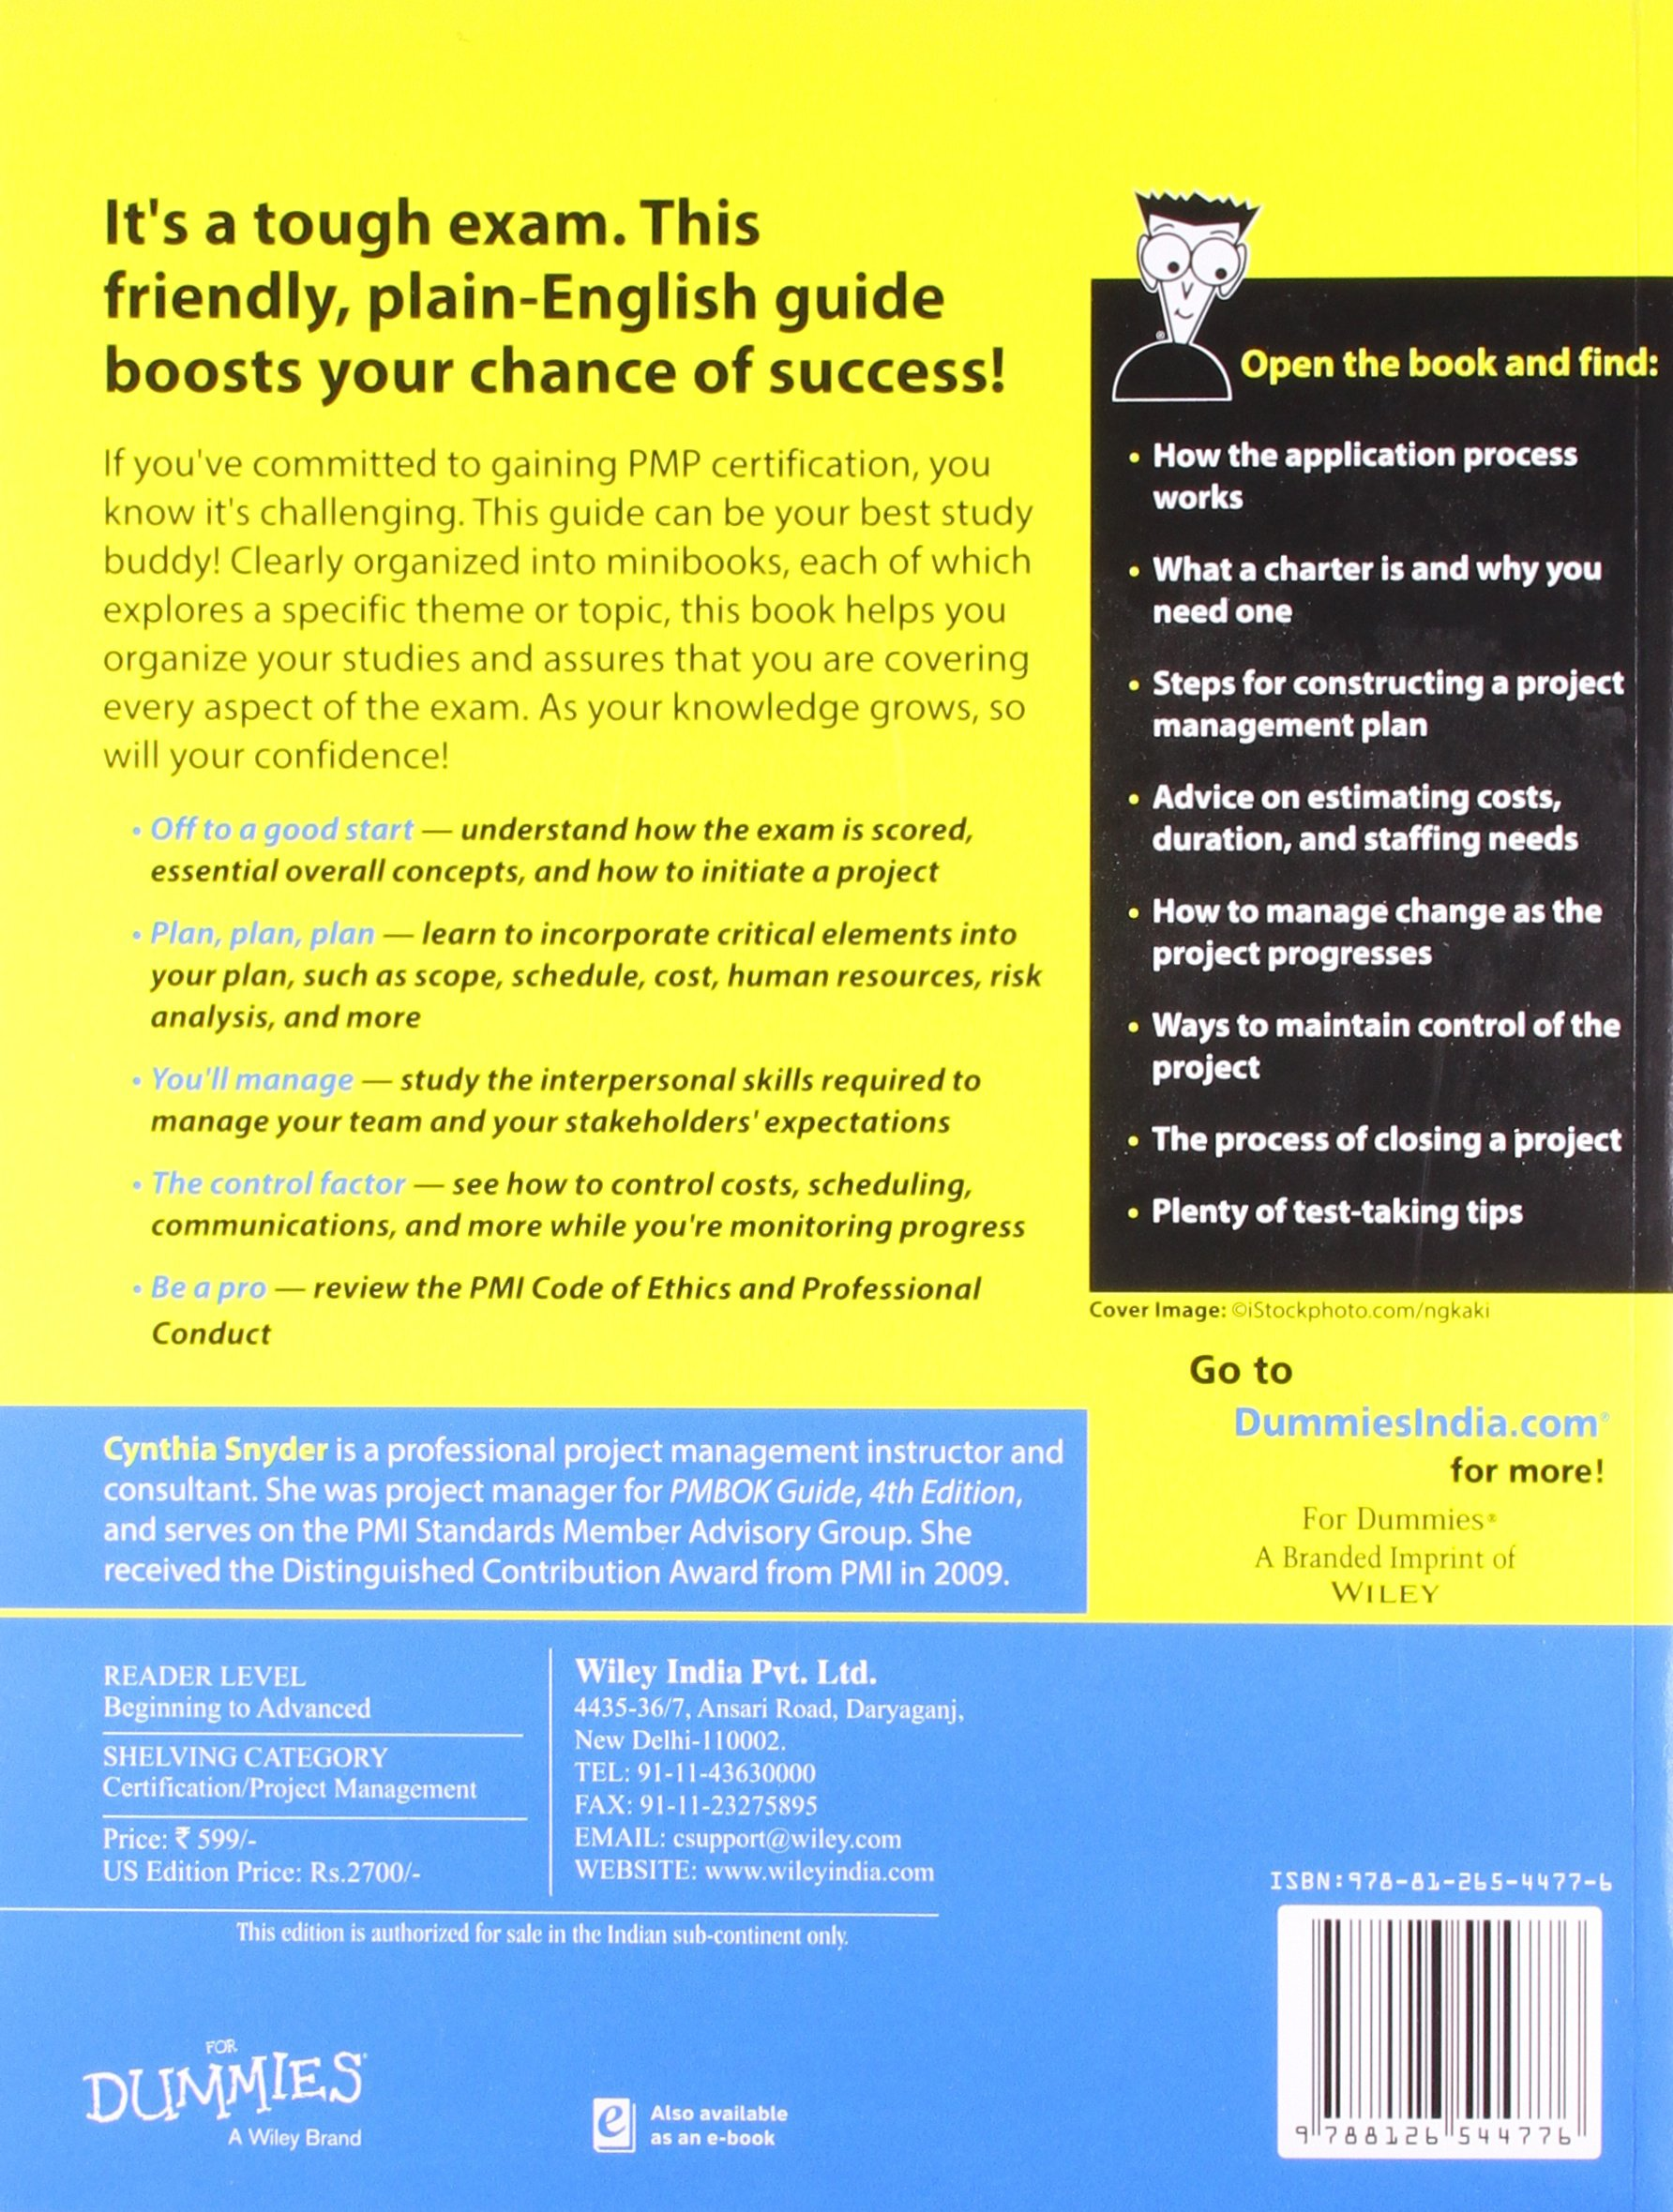 Pmp certification all in one for dummies cynthia snyder pmp certification all in one for dummies cynthia snyder 9788126544776 amazon books 1betcityfo Choice Image